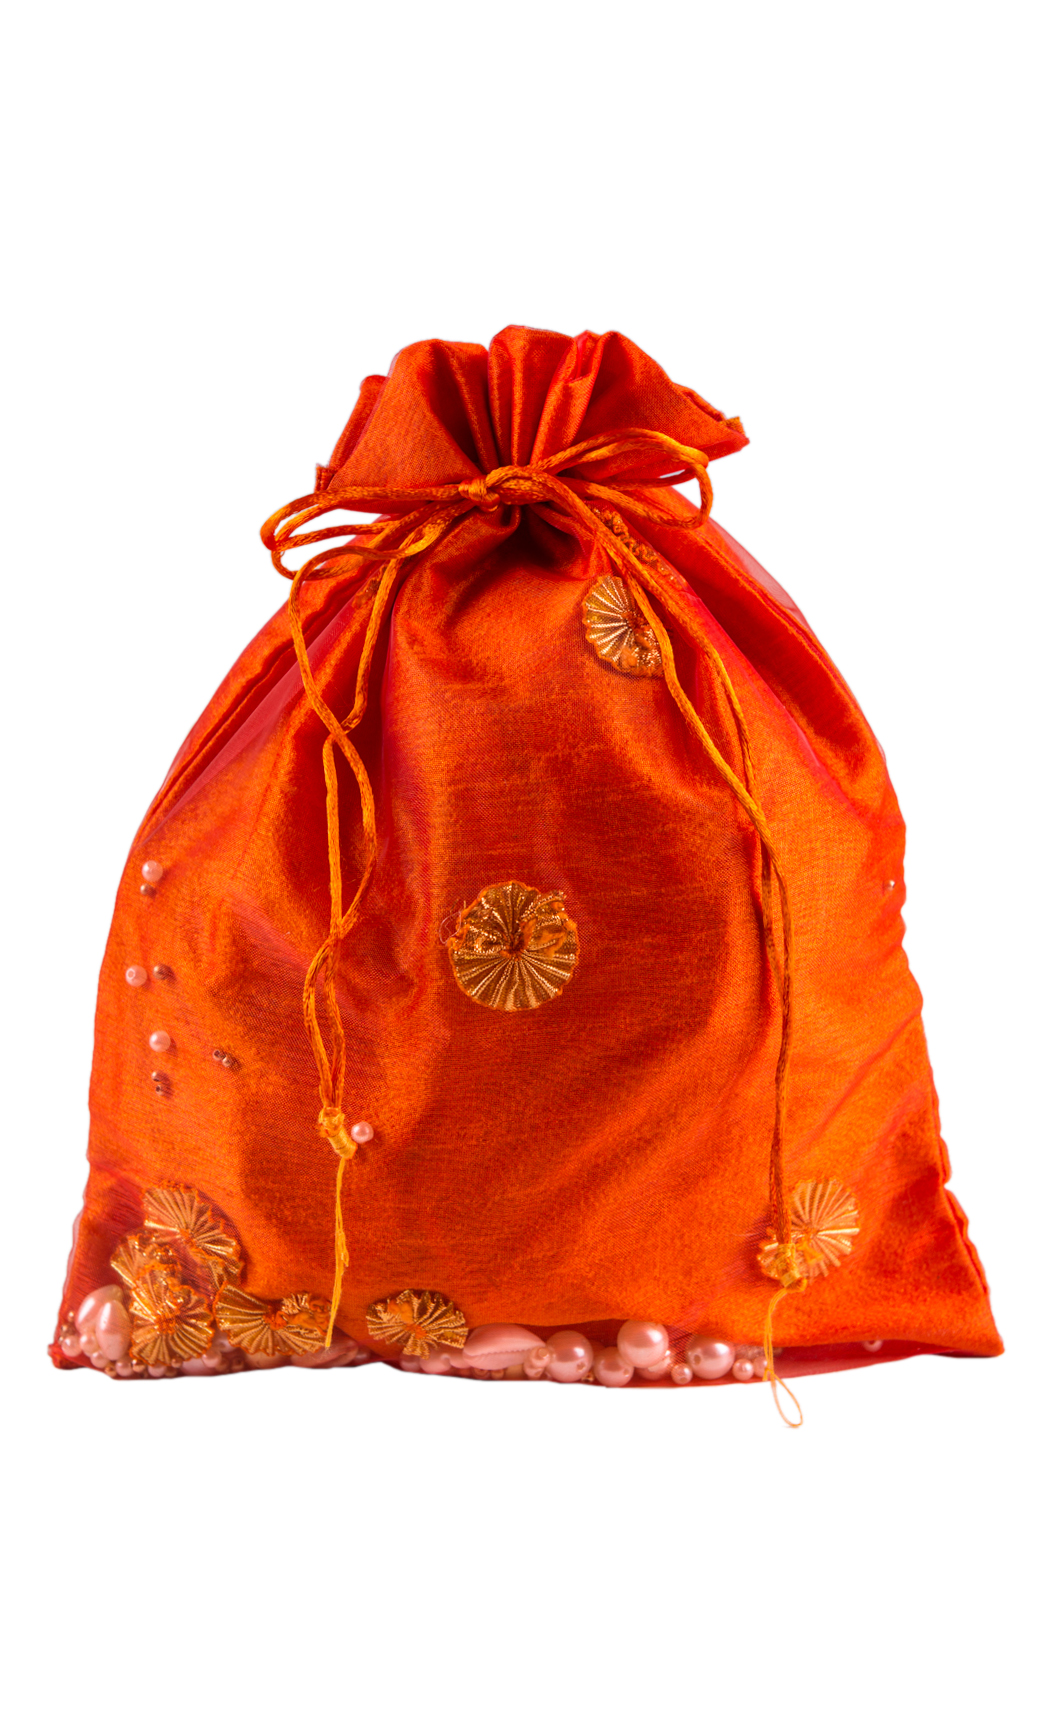 Orange Double Layered Potli with Pearl and Gota Work (Pack of 5) - Buy Online